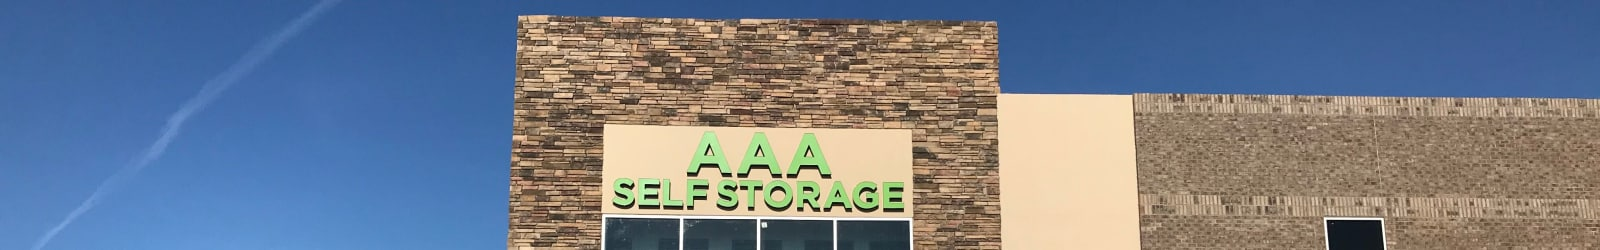 Photo gallery at AAA Self Storage at Jag Branch Blvd in Kernersville, NC